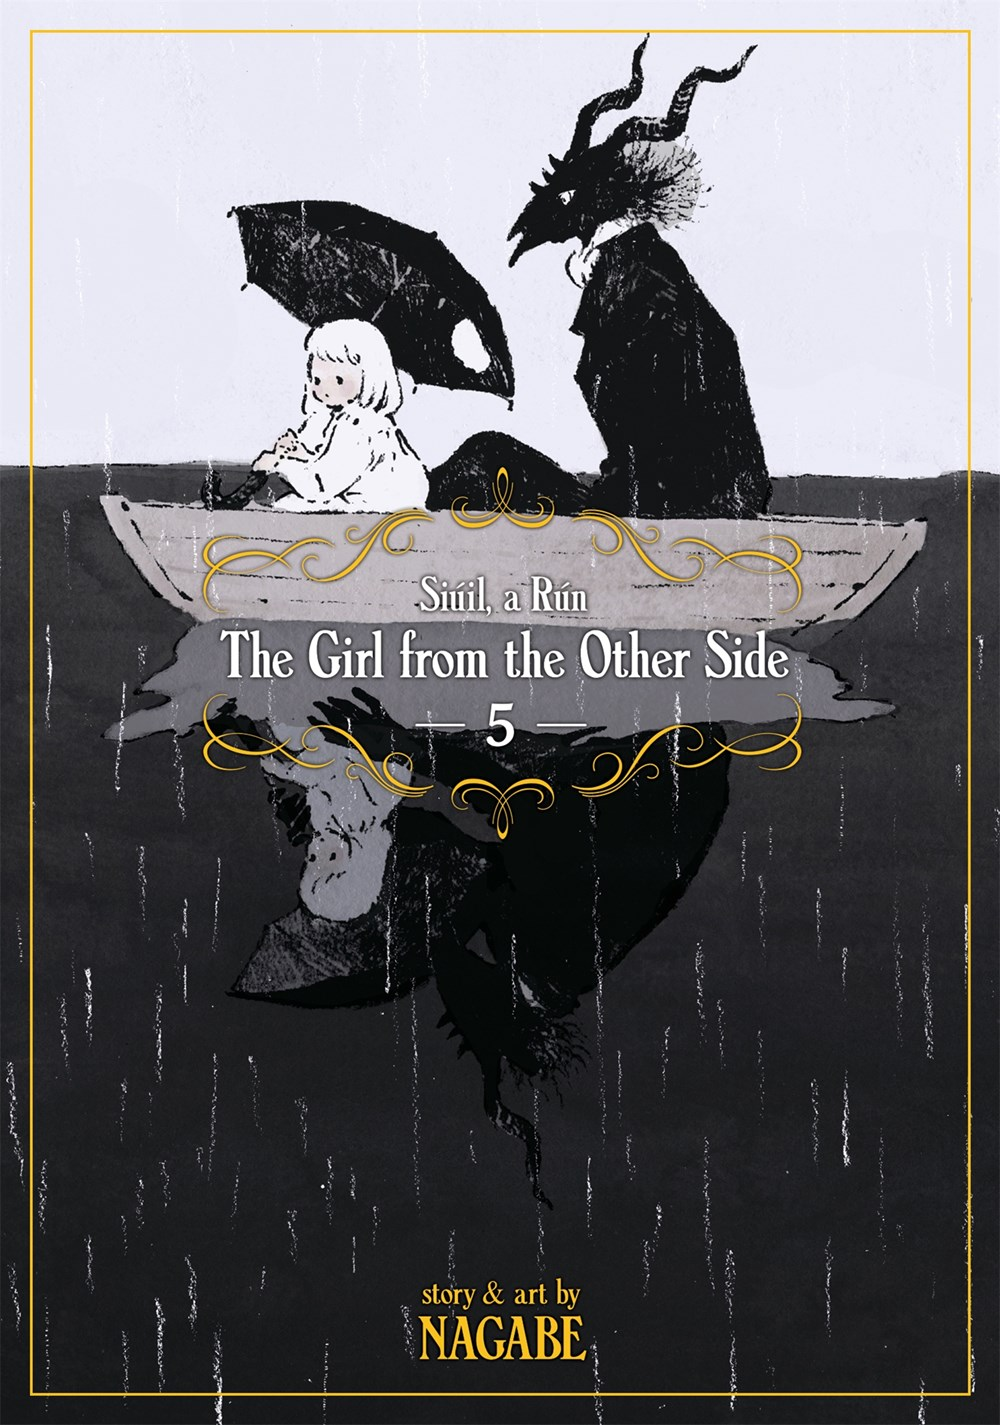 The Girl From the Other Side Siuil a Run Manga Volume 5